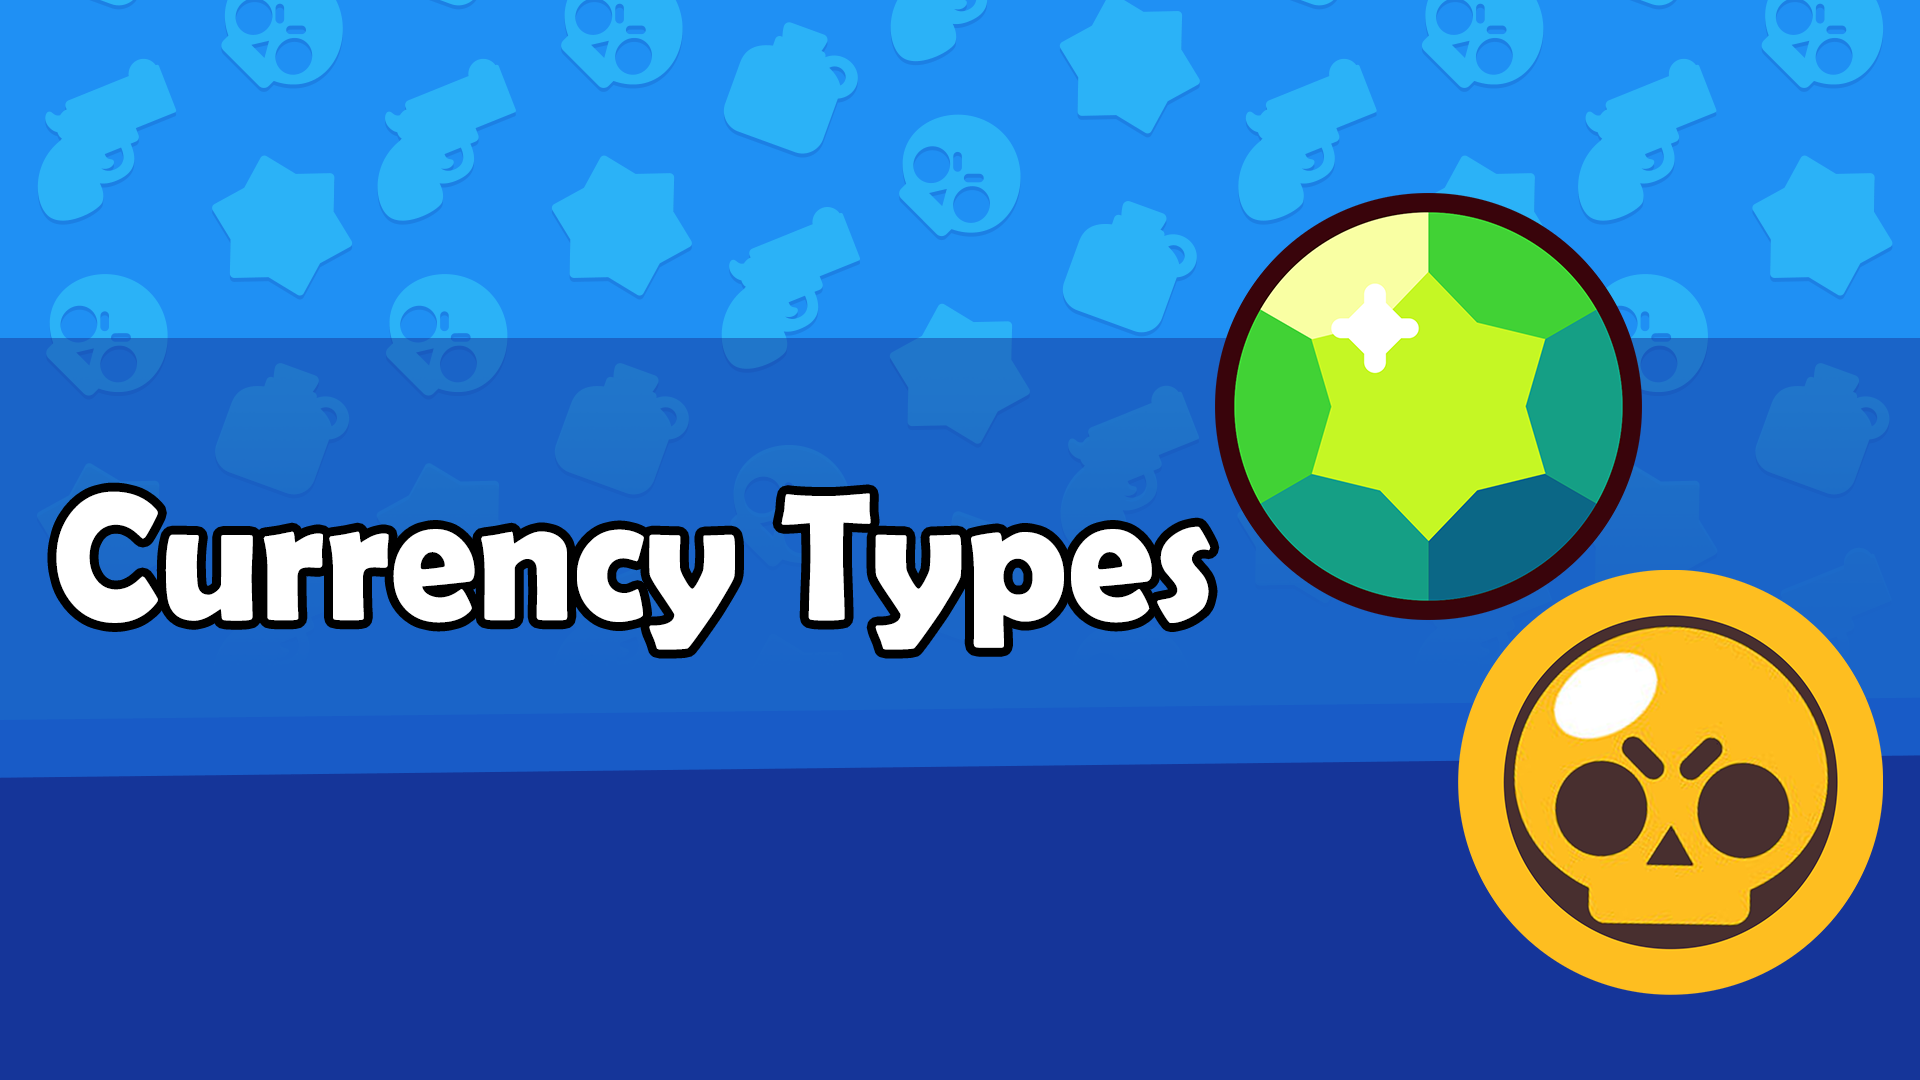 Currency Types | Brawl Stars - zilliongamer